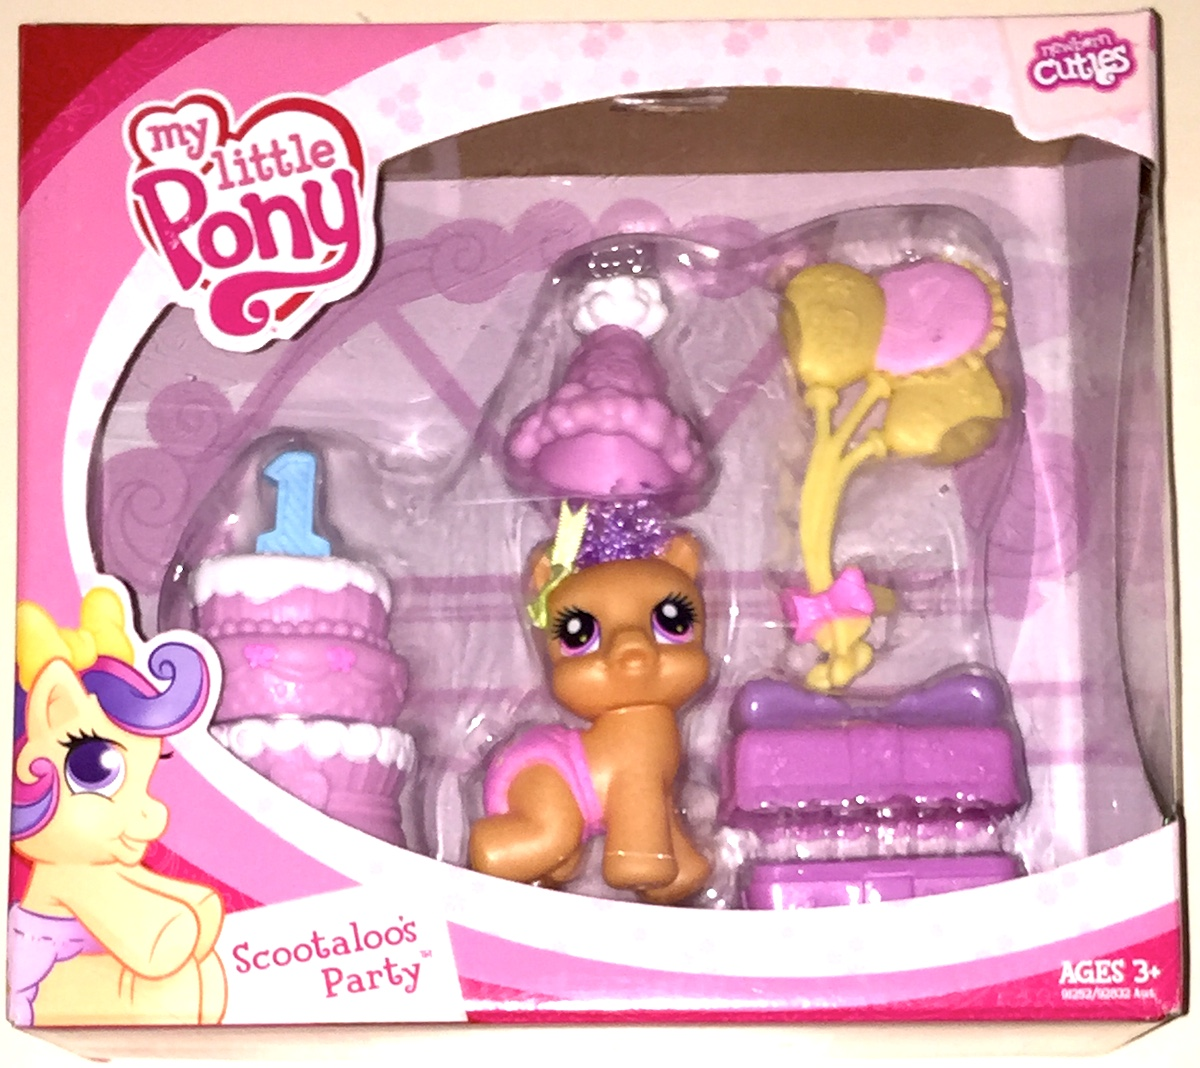 My Little Pony Newborn Cuties Scootaloo S Party Pinky Pie S Birthday Purpletoyshop Com Available in a range of colours and styles for men, women, and everyone. my little pony newborn cuties scootaloo